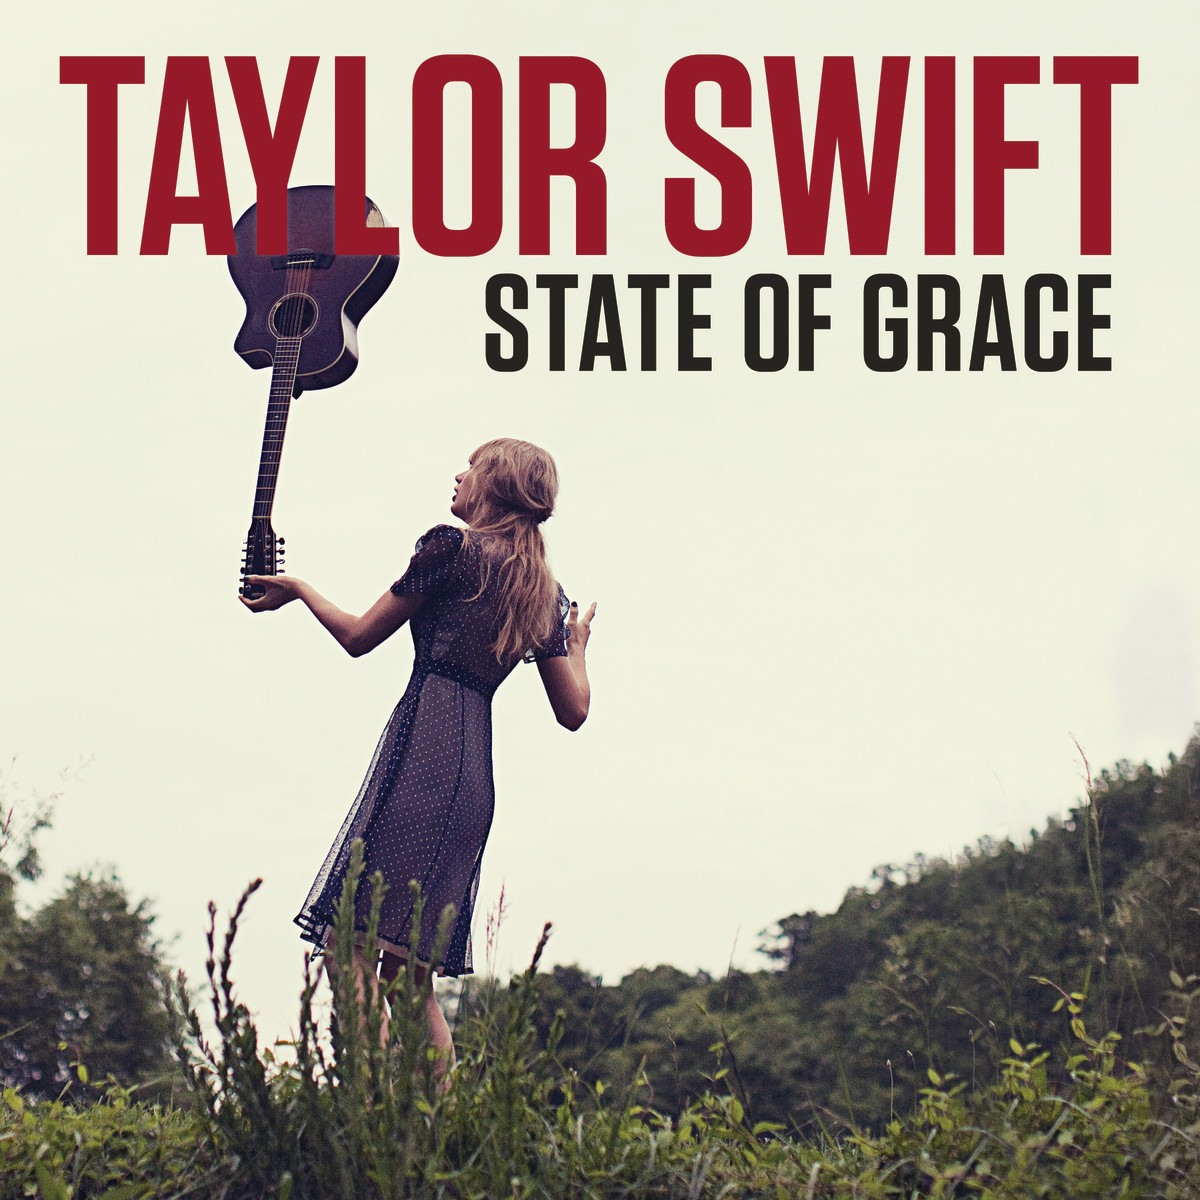 Taylor Swift State Of Grace Guitar Chords Guitar Chords